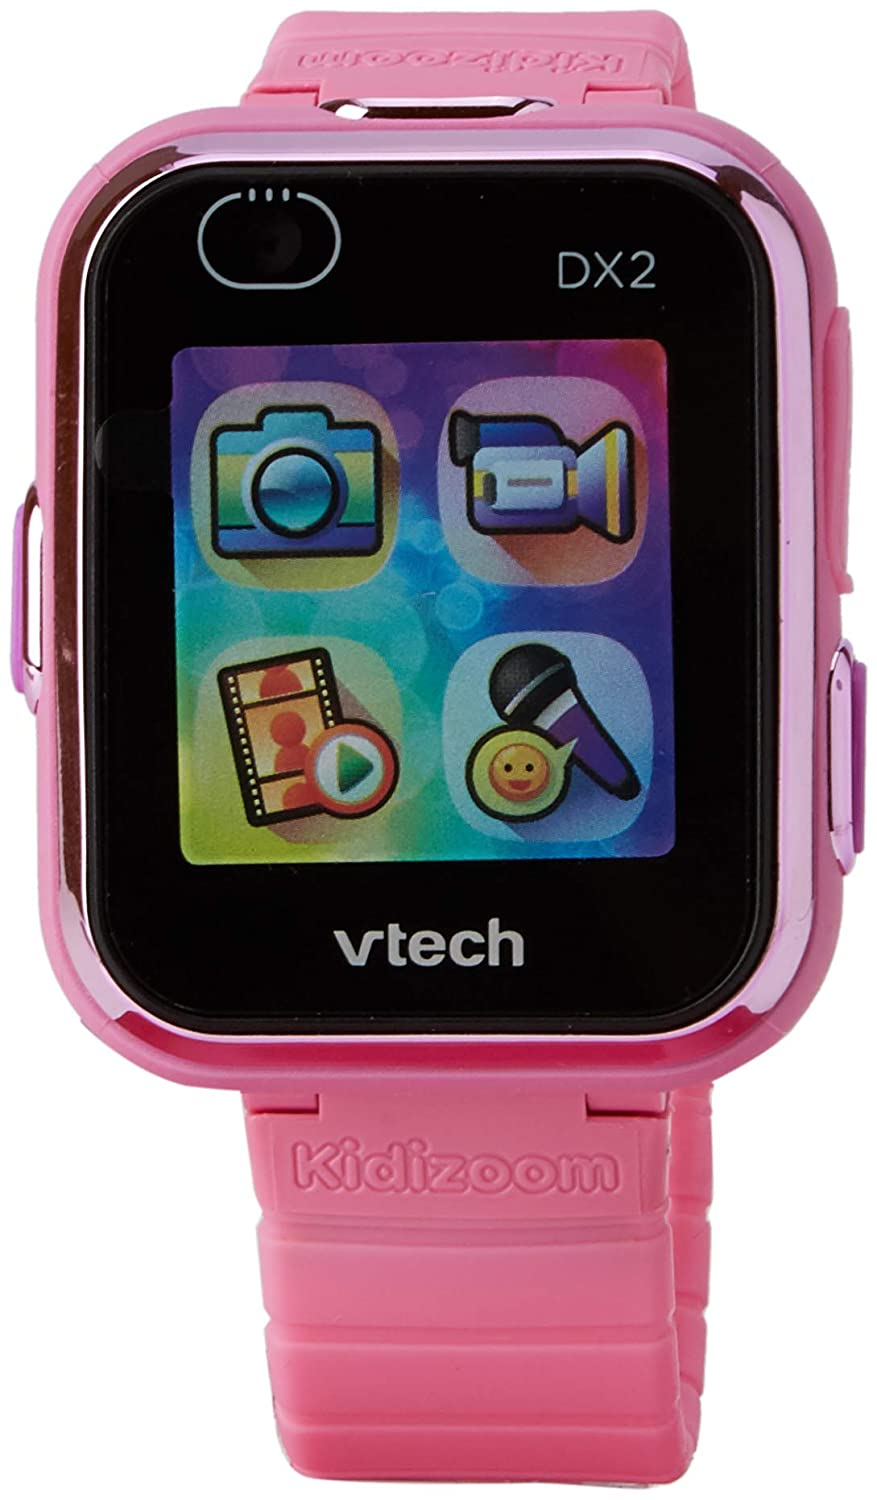 VTech Kidizoom Smart Watch DX2 - Reloj Inteligente para niños, Color Rosa, versión Inglesa (193853)